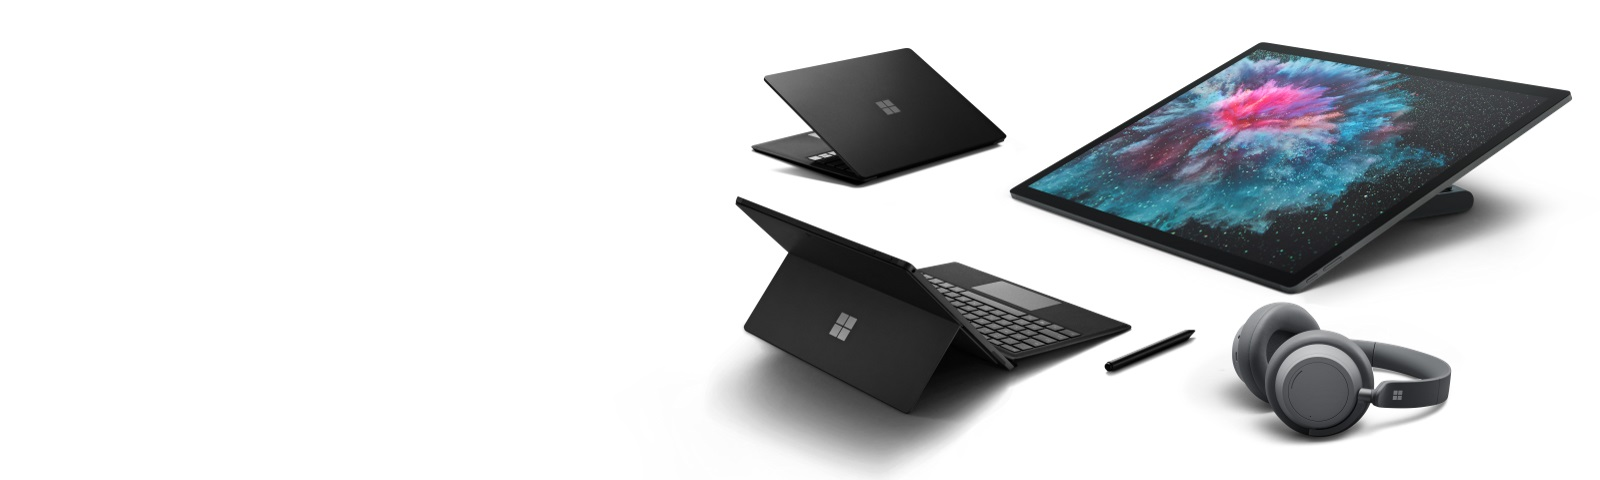 Surface devices on white background